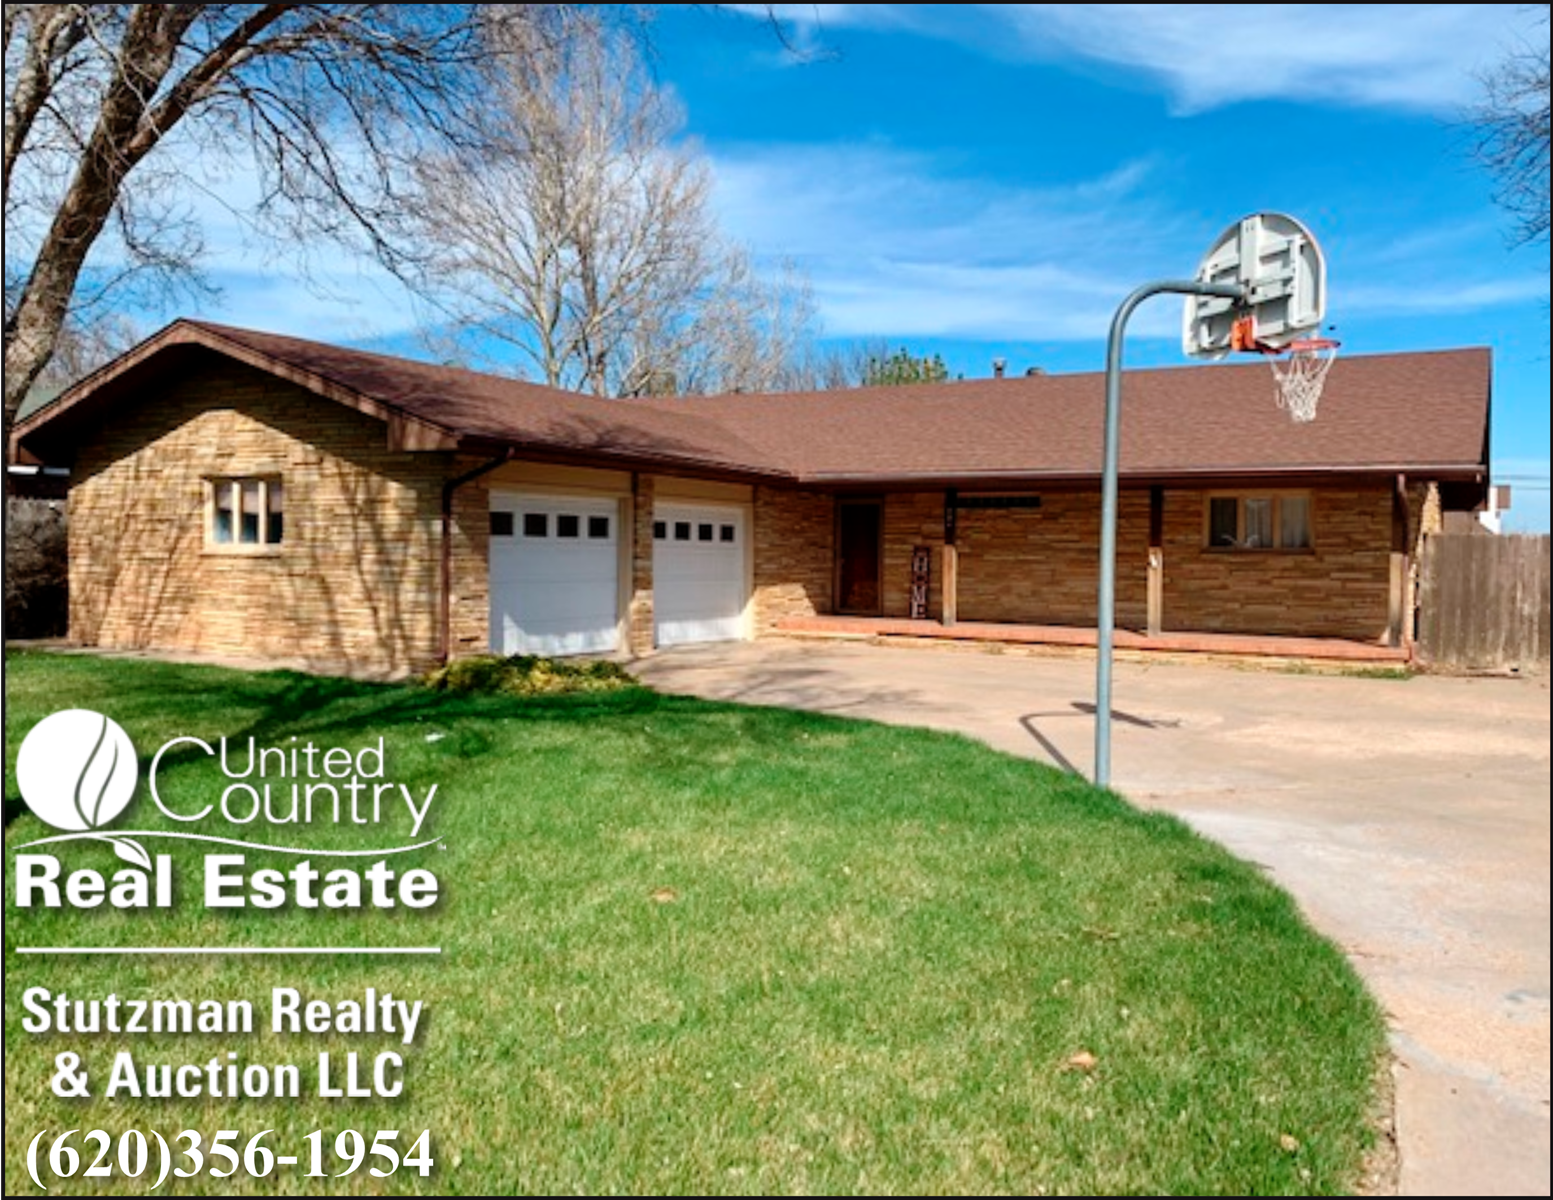 LARGE BRICK HOME FOR SALE IN HUGOTON, KANSAS